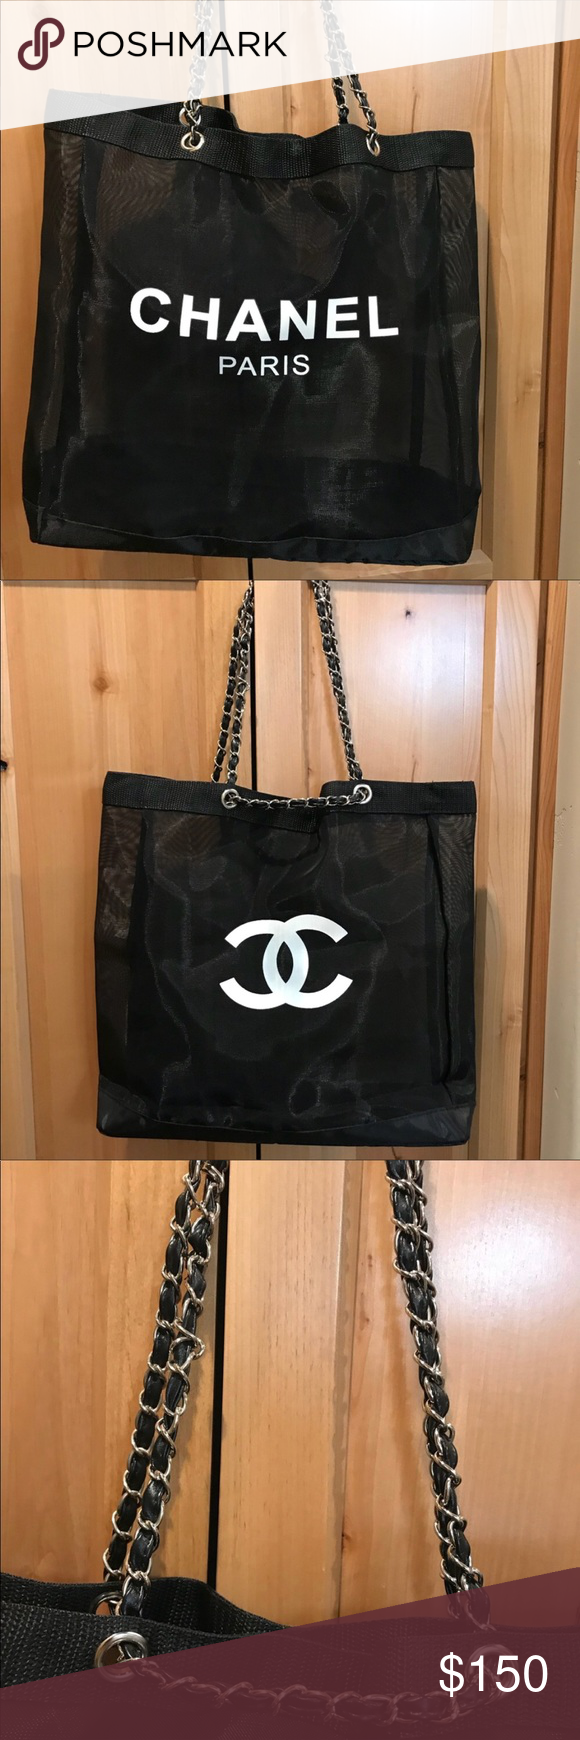 fdfe3ee73225 Chanel Paris VIP CC Mesh Tote Black 🔷PRICE FIRM🔷 14 inch tall by 14